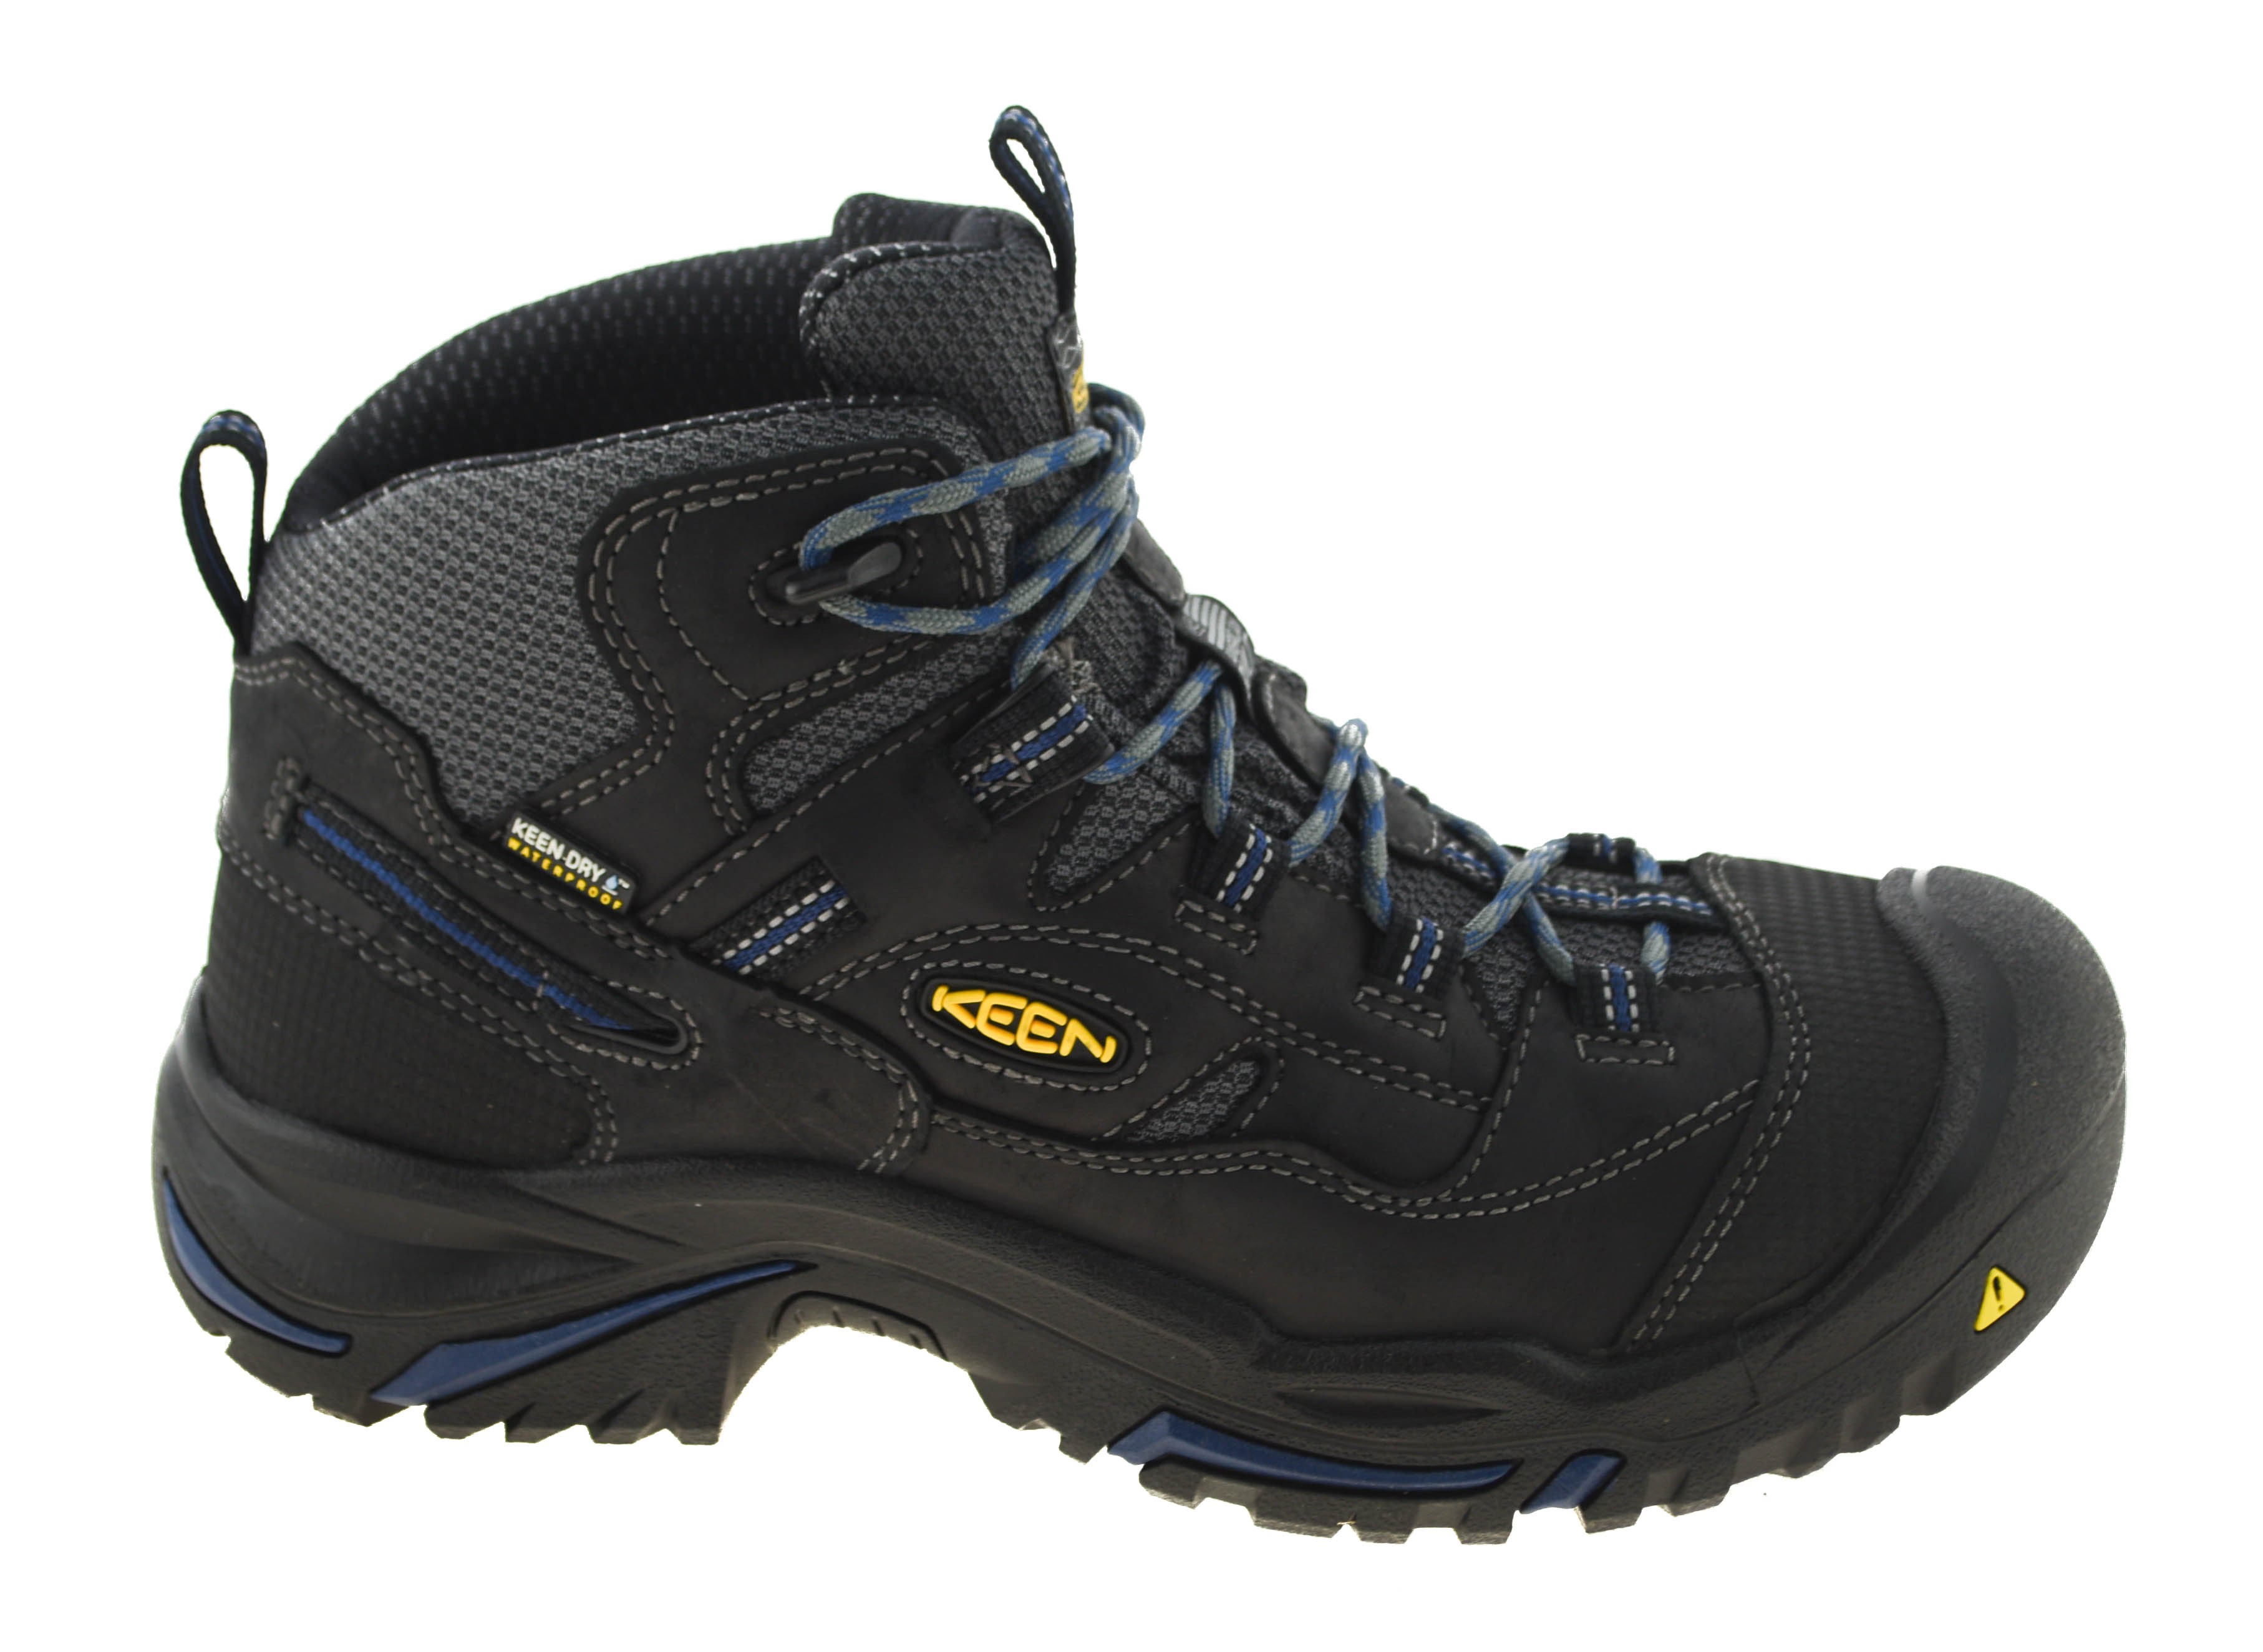 2046b9c8f14 Details about Keen Utility Men's Braddock Mid Waterproof Soft-Toe Work  Boots Style 1014605